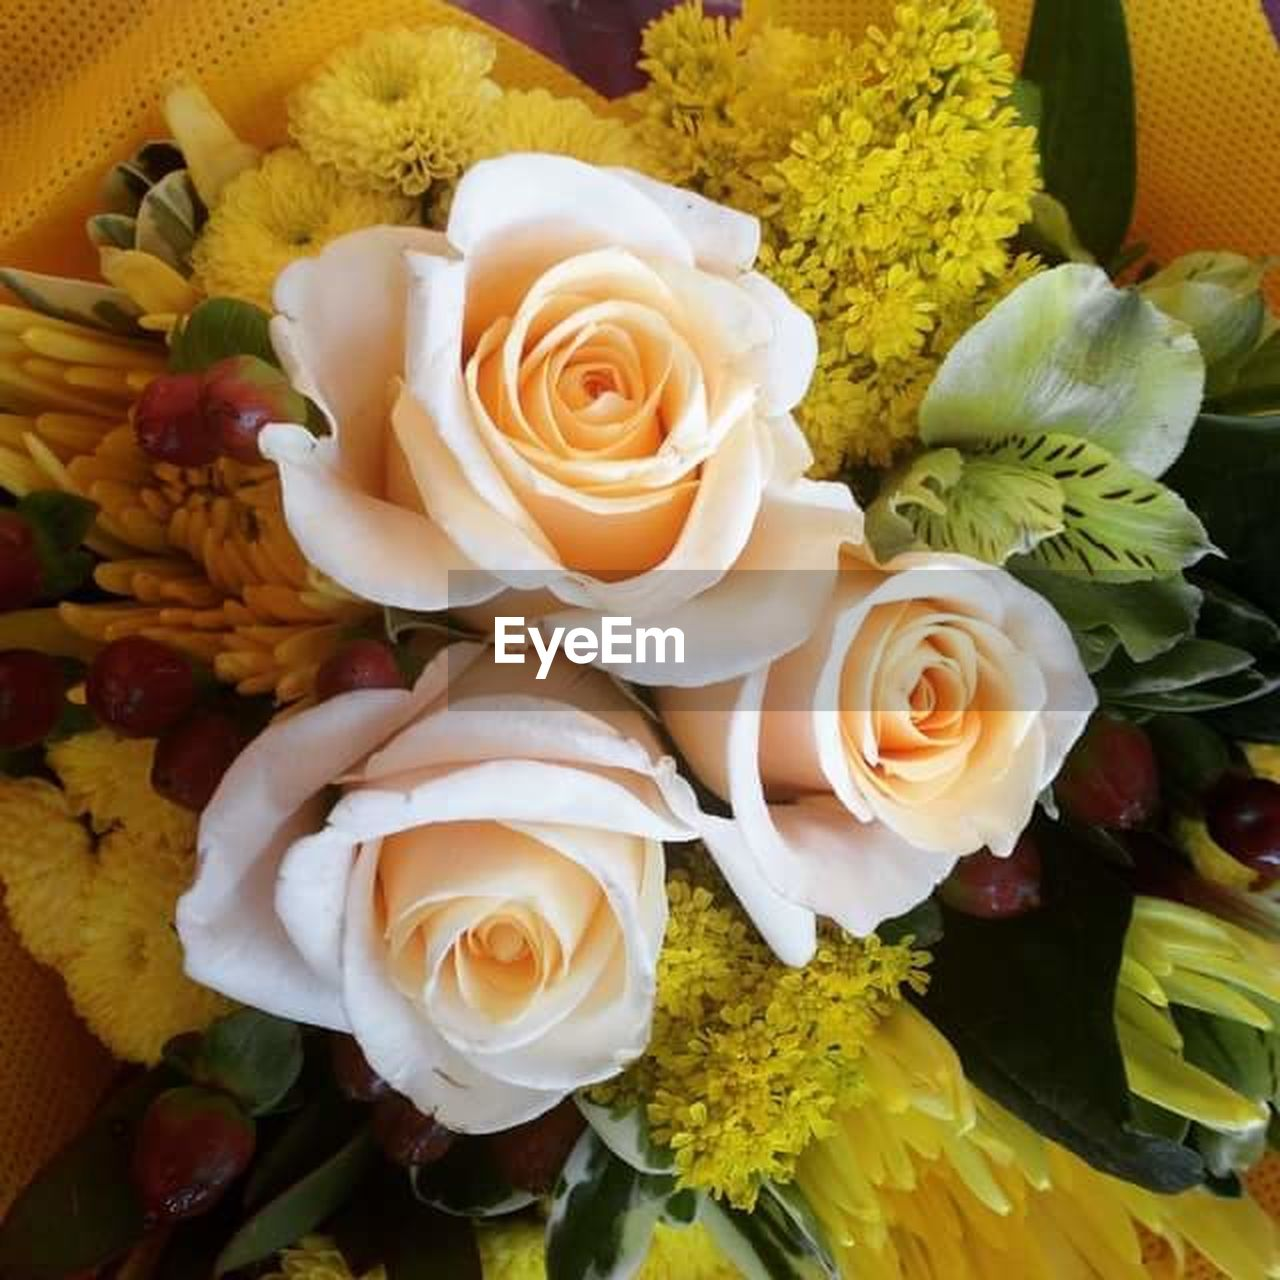 flower, rose - flower, petal, fragility, beauty in nature, flower head, freshness, no people, nature, high angle view, bouquet, close-up, indoors, yellow, growth, plant, day